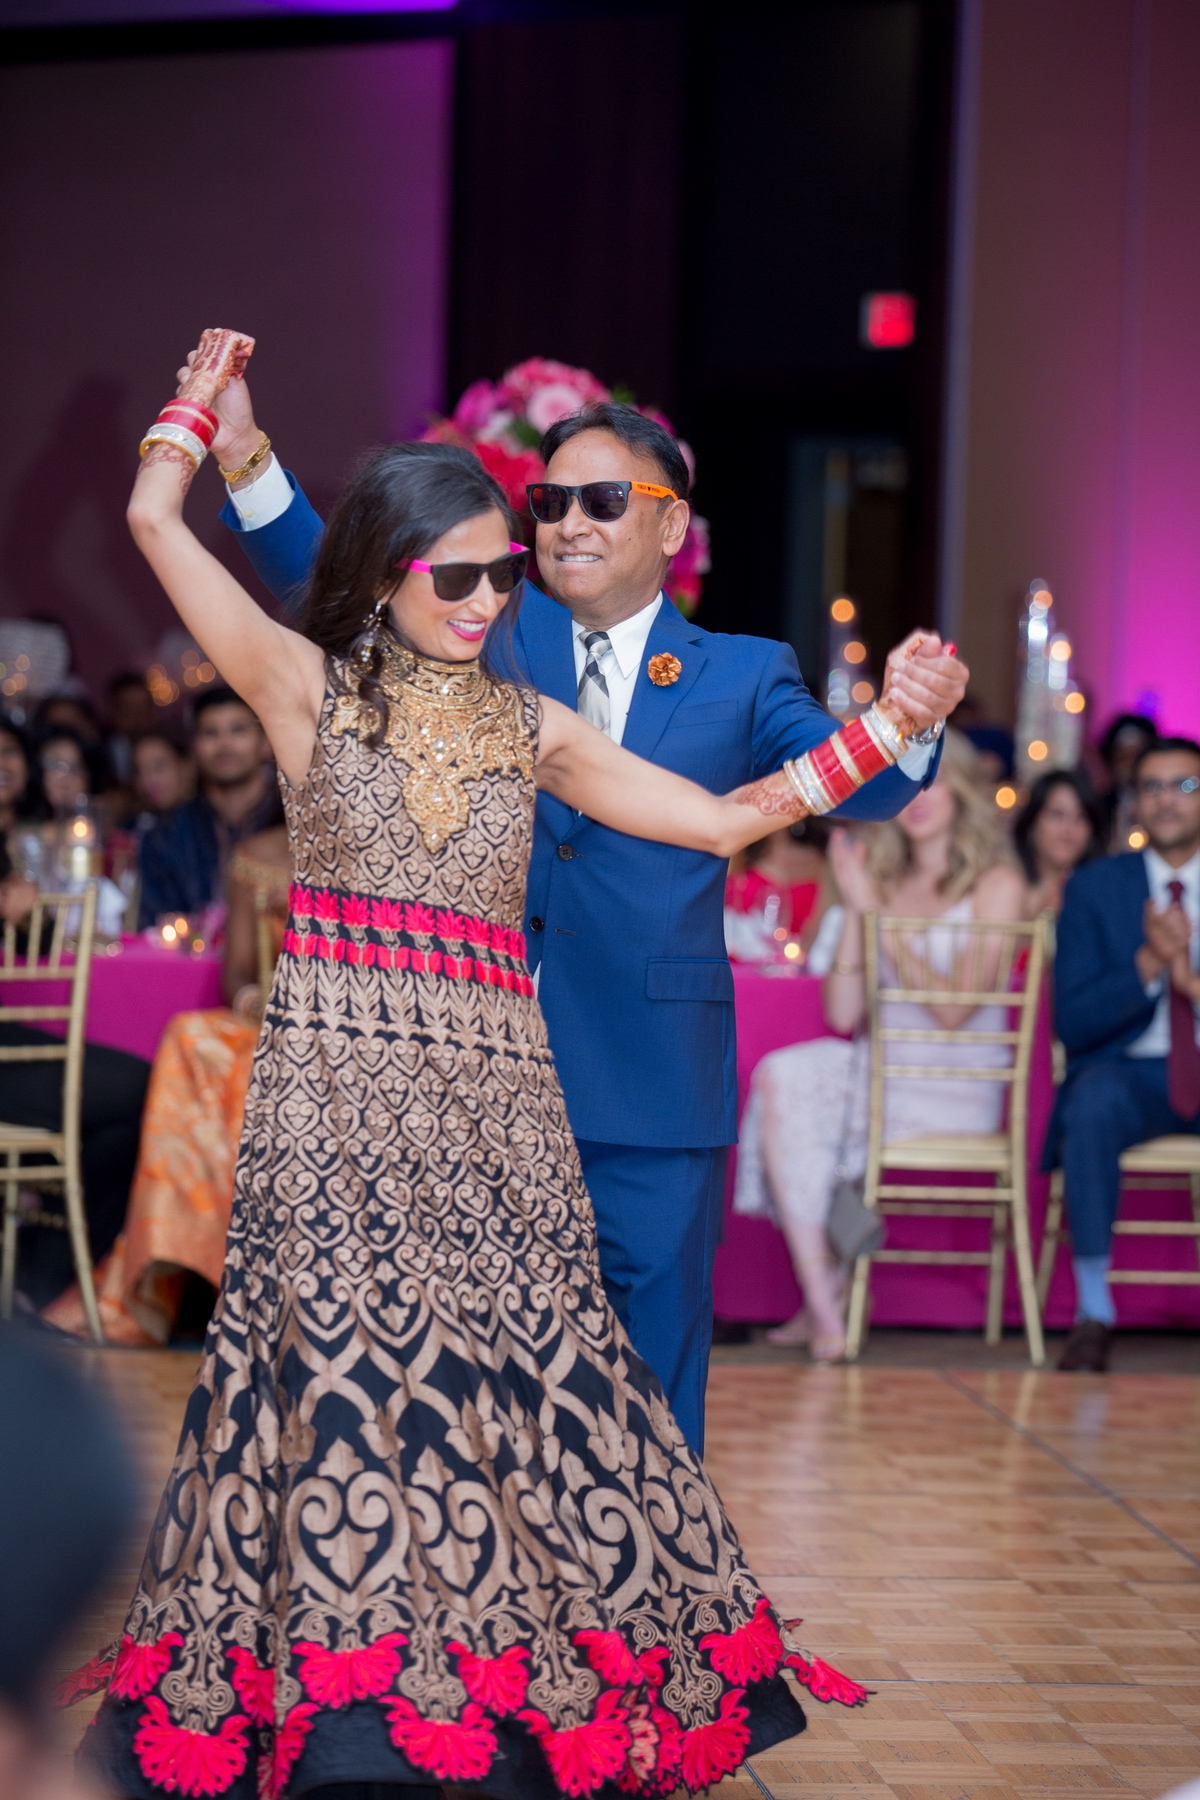 Le Cape Weddings - South Asian Wedding - Chicago Wedding Photographer P&V-74-2.jpg